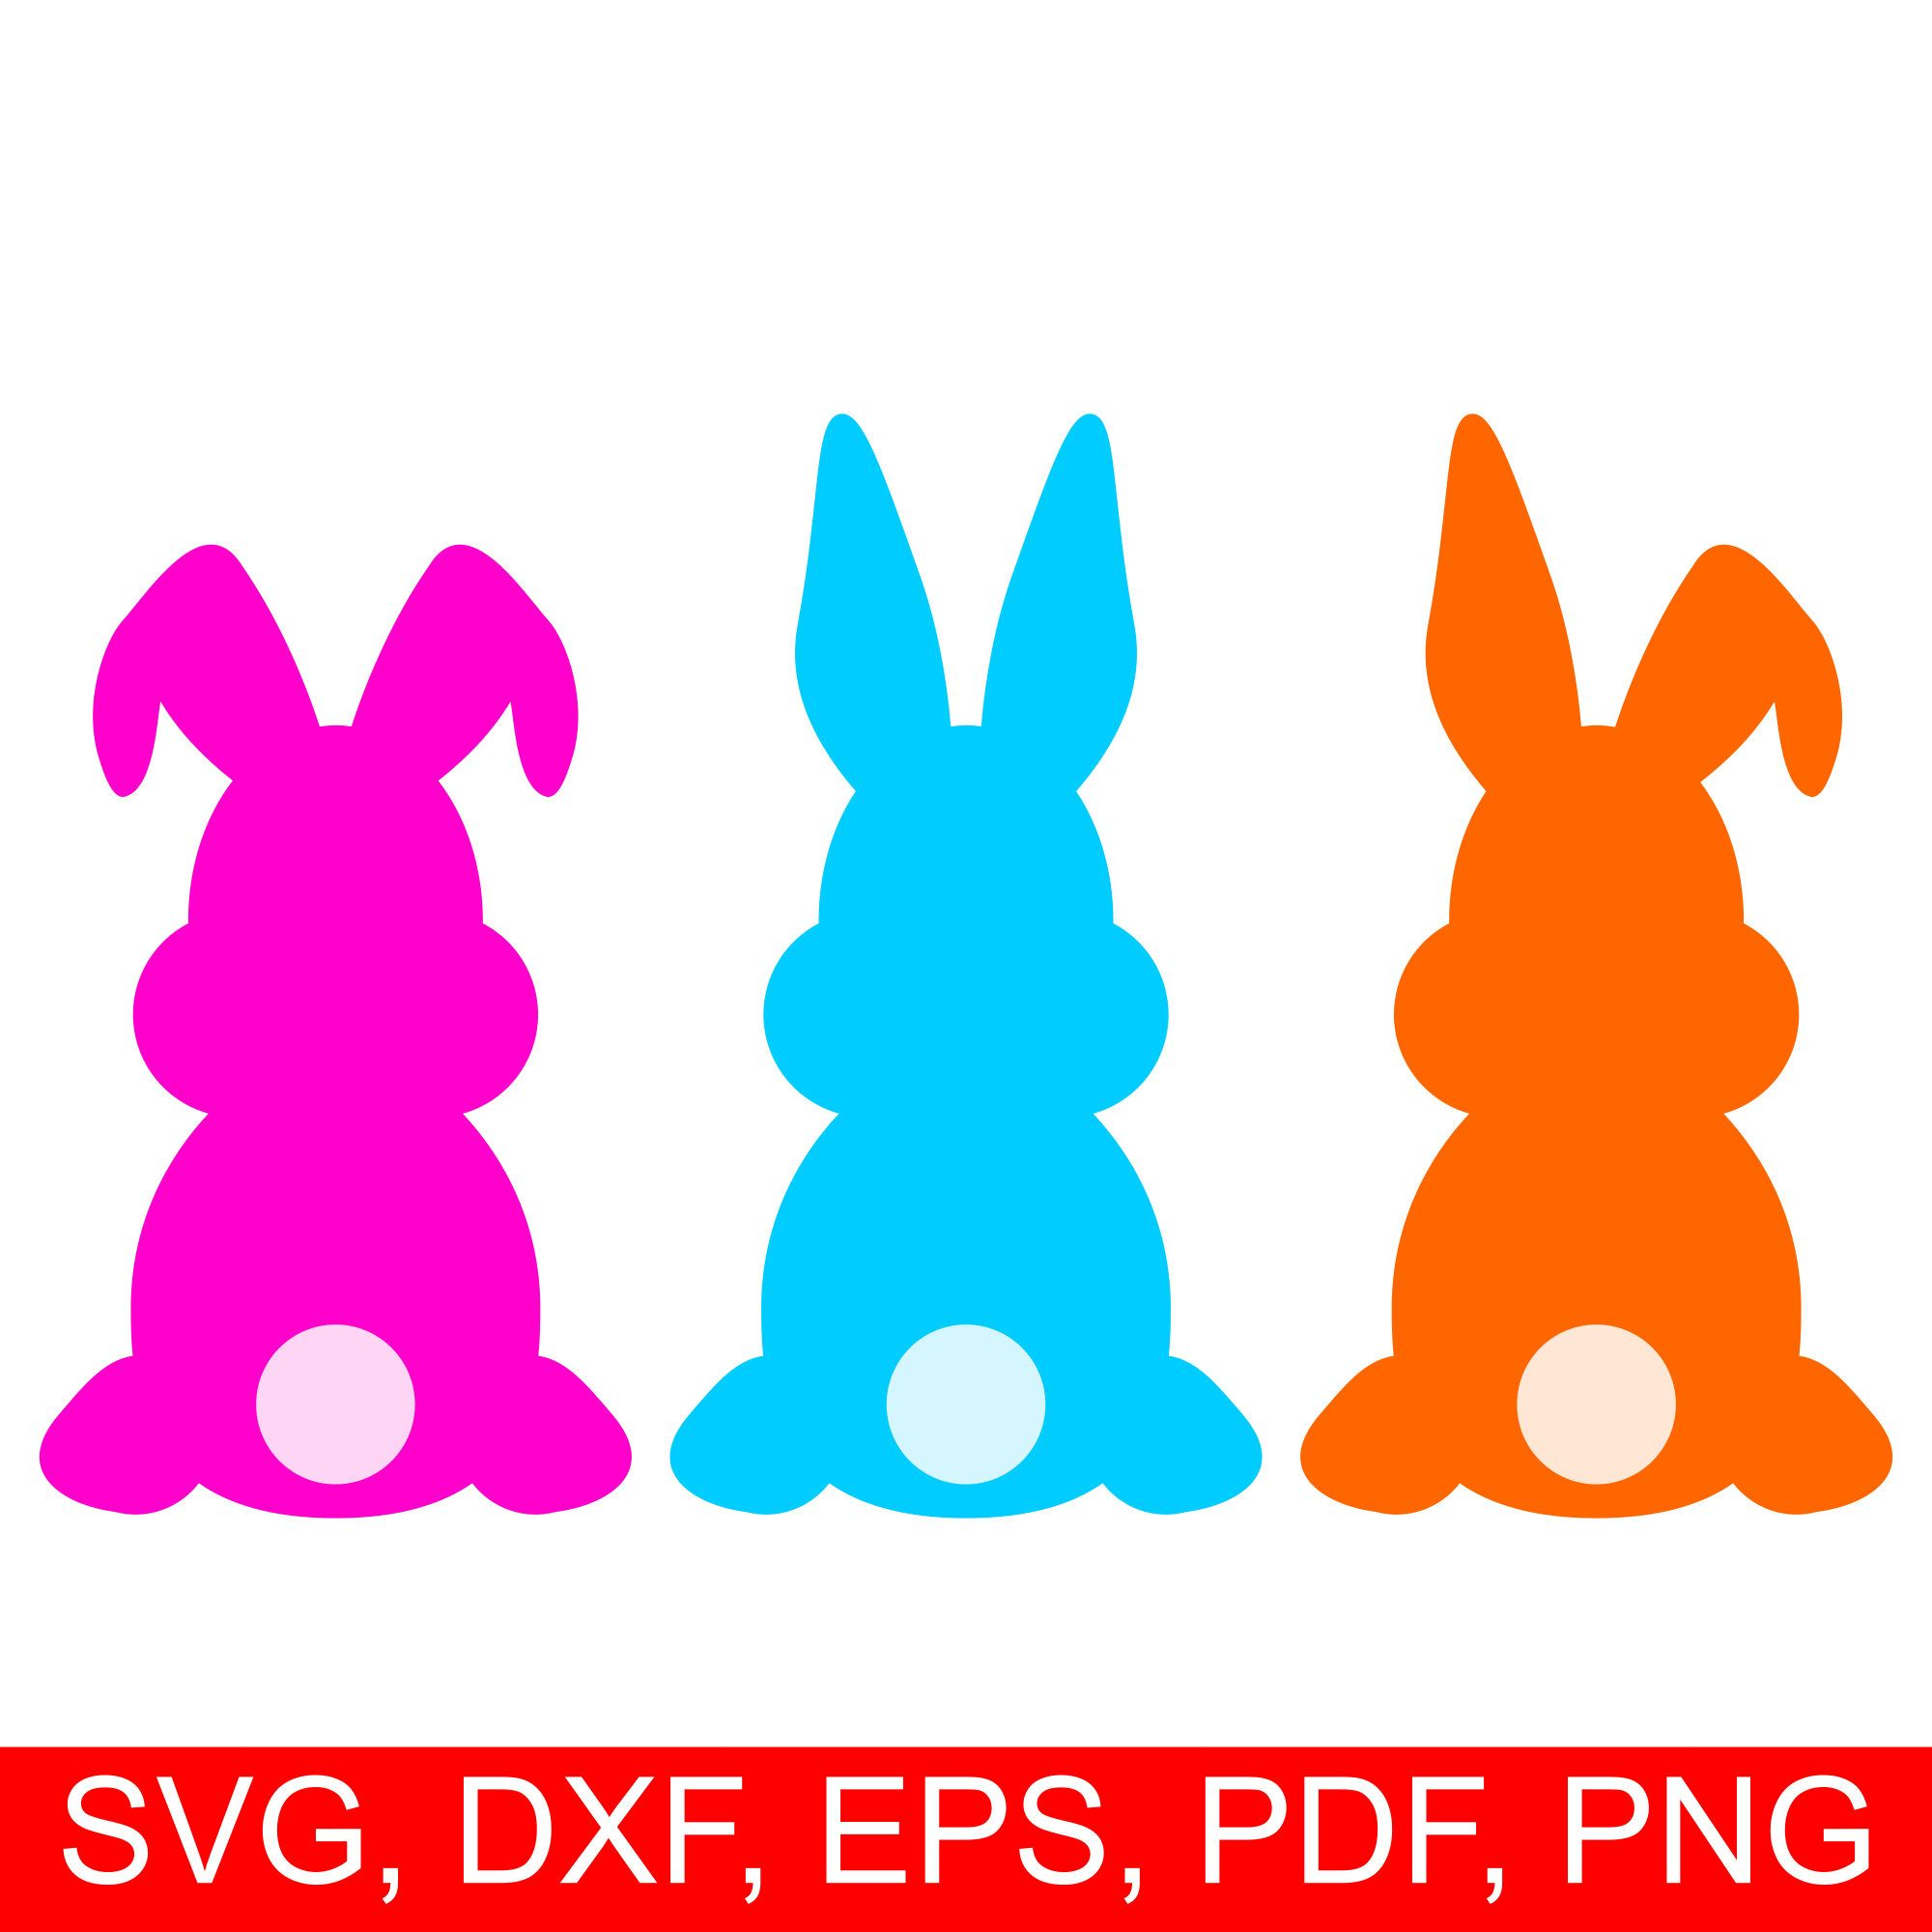 3 very cute Easter Bunny SVG files for Cricut & Silhouette